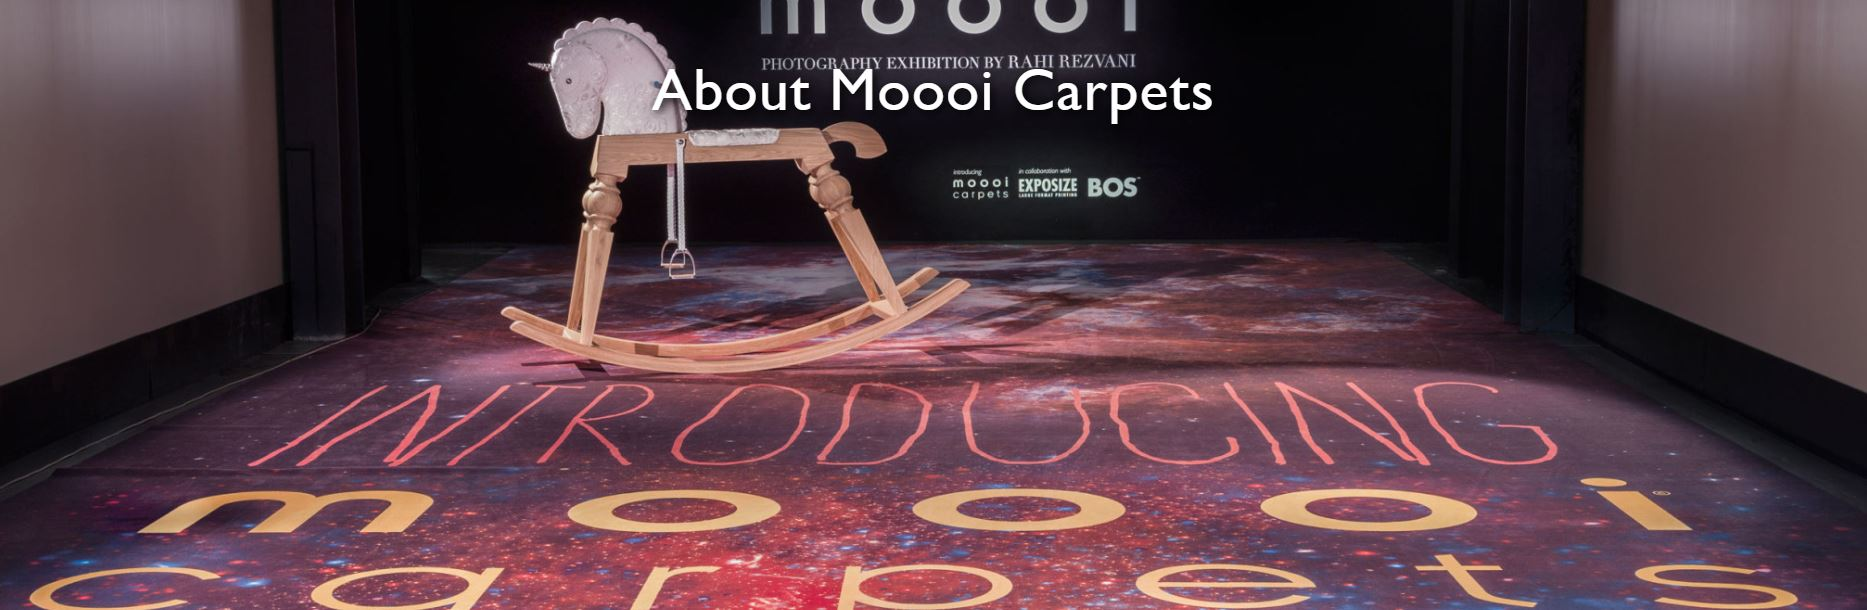 about Moooi Carpets